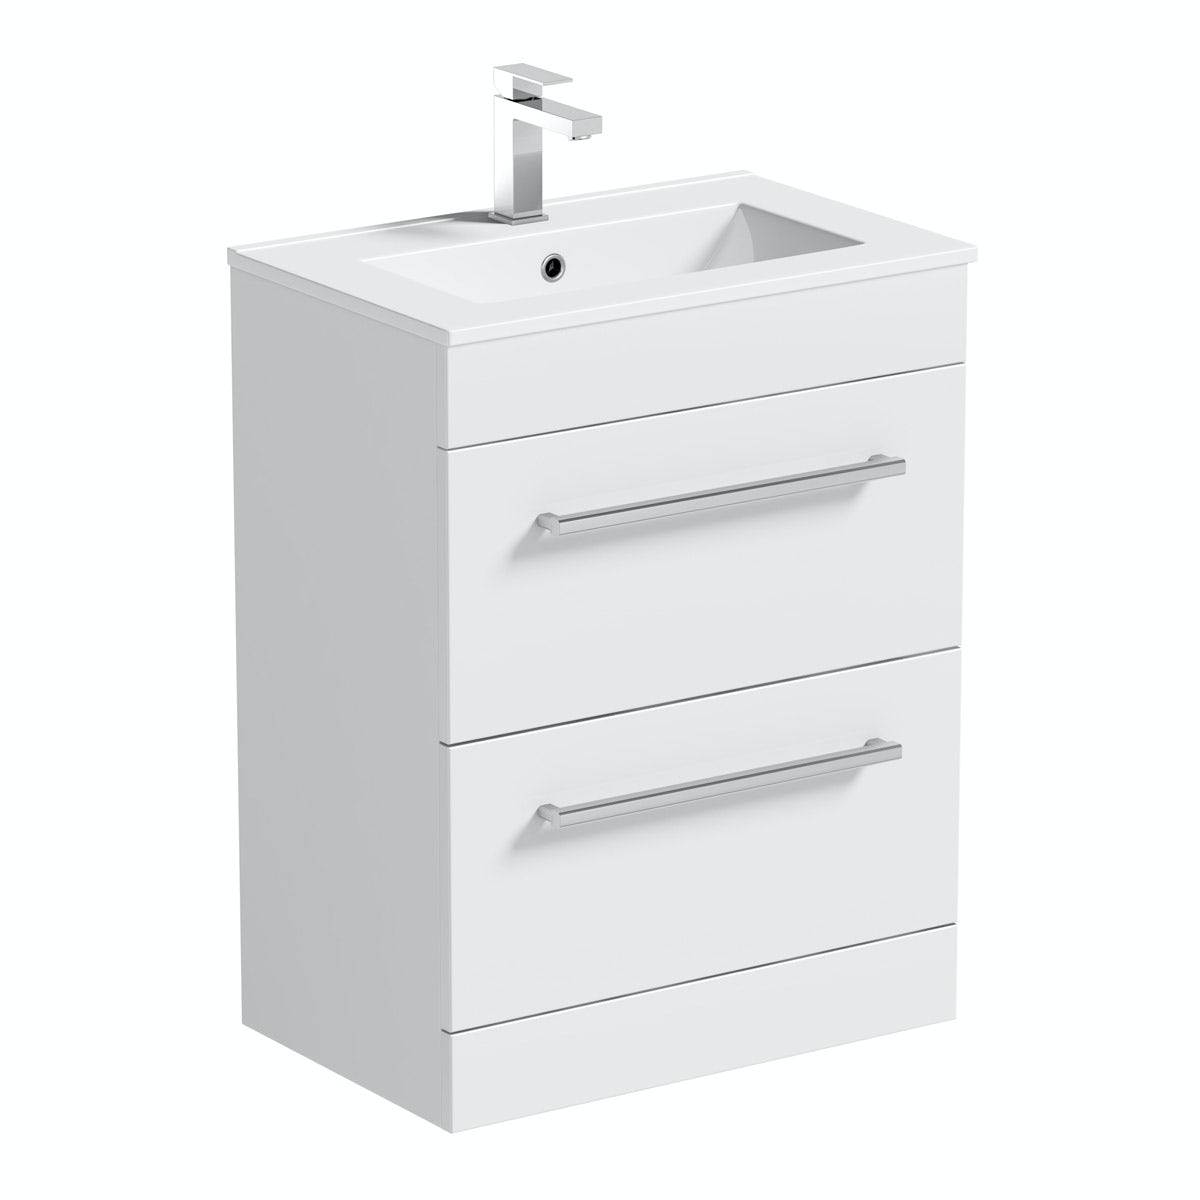 Derwent vanity drawer unit and basin 600mm